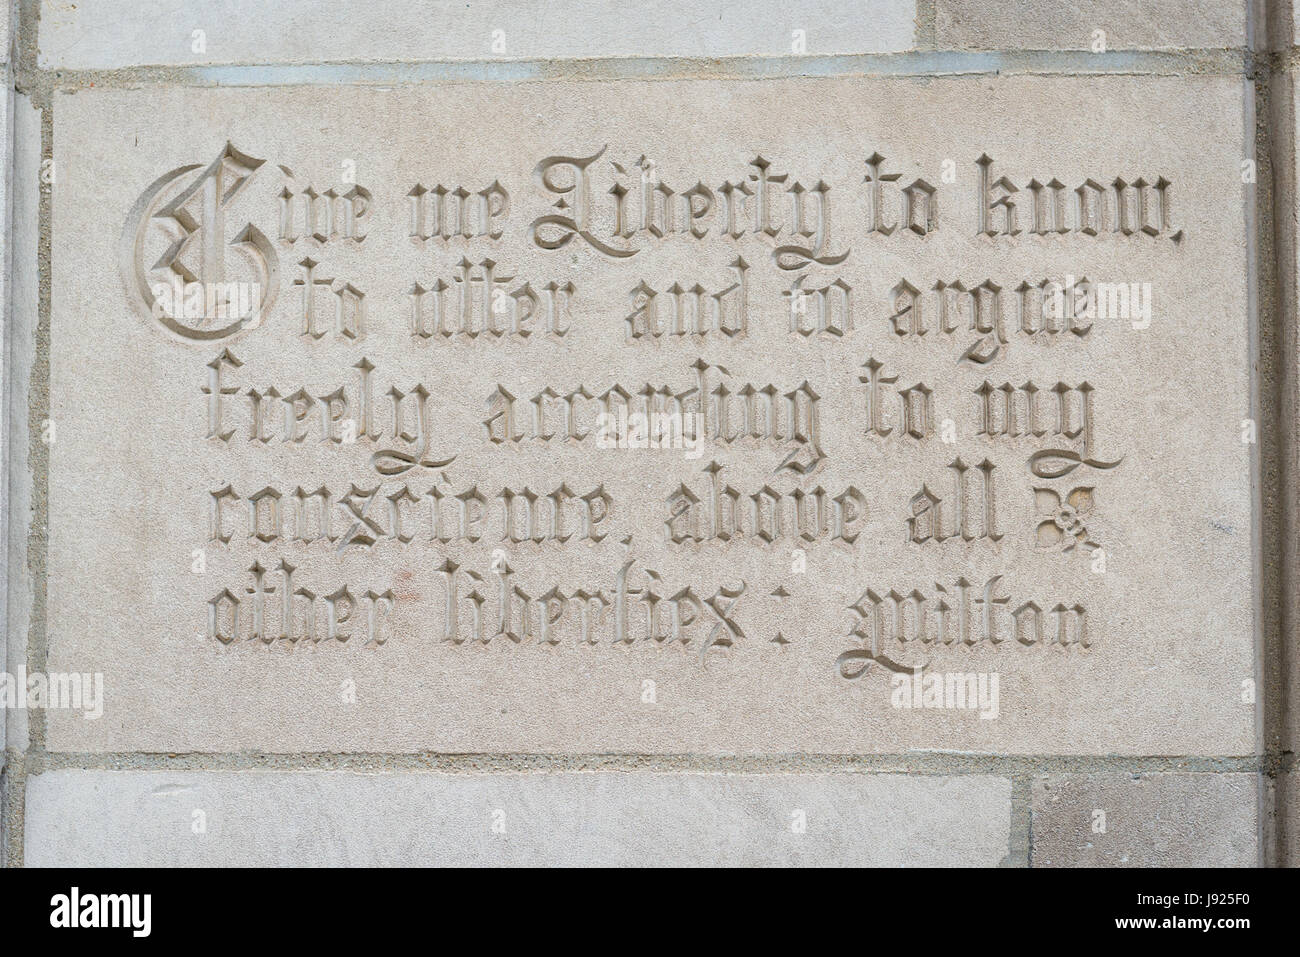 Chicago Illinois Michigan Avenue Chicago Tribune Tower plaque Give me Liberty to know to utter and to argue freely - Stock Image